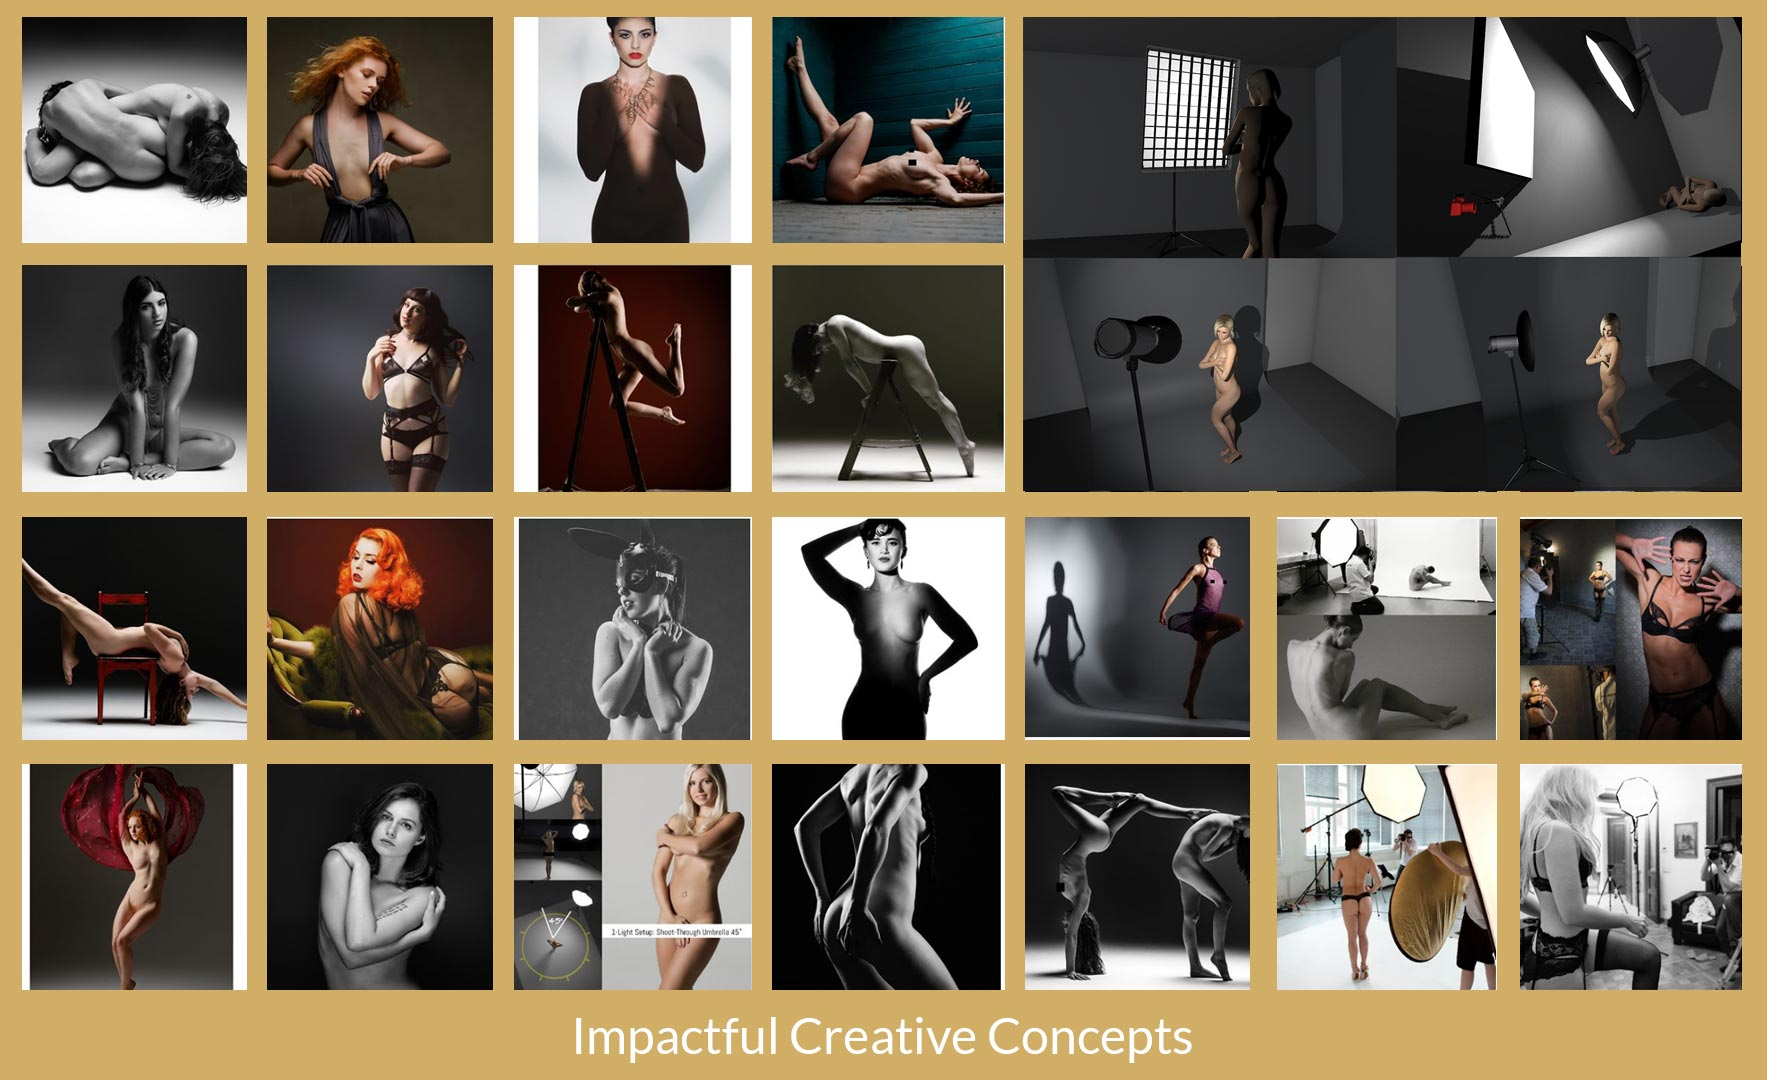 Artistic Nudes Photography - Mastering 1-Light - Creative Concepts, Impactful Photo Results